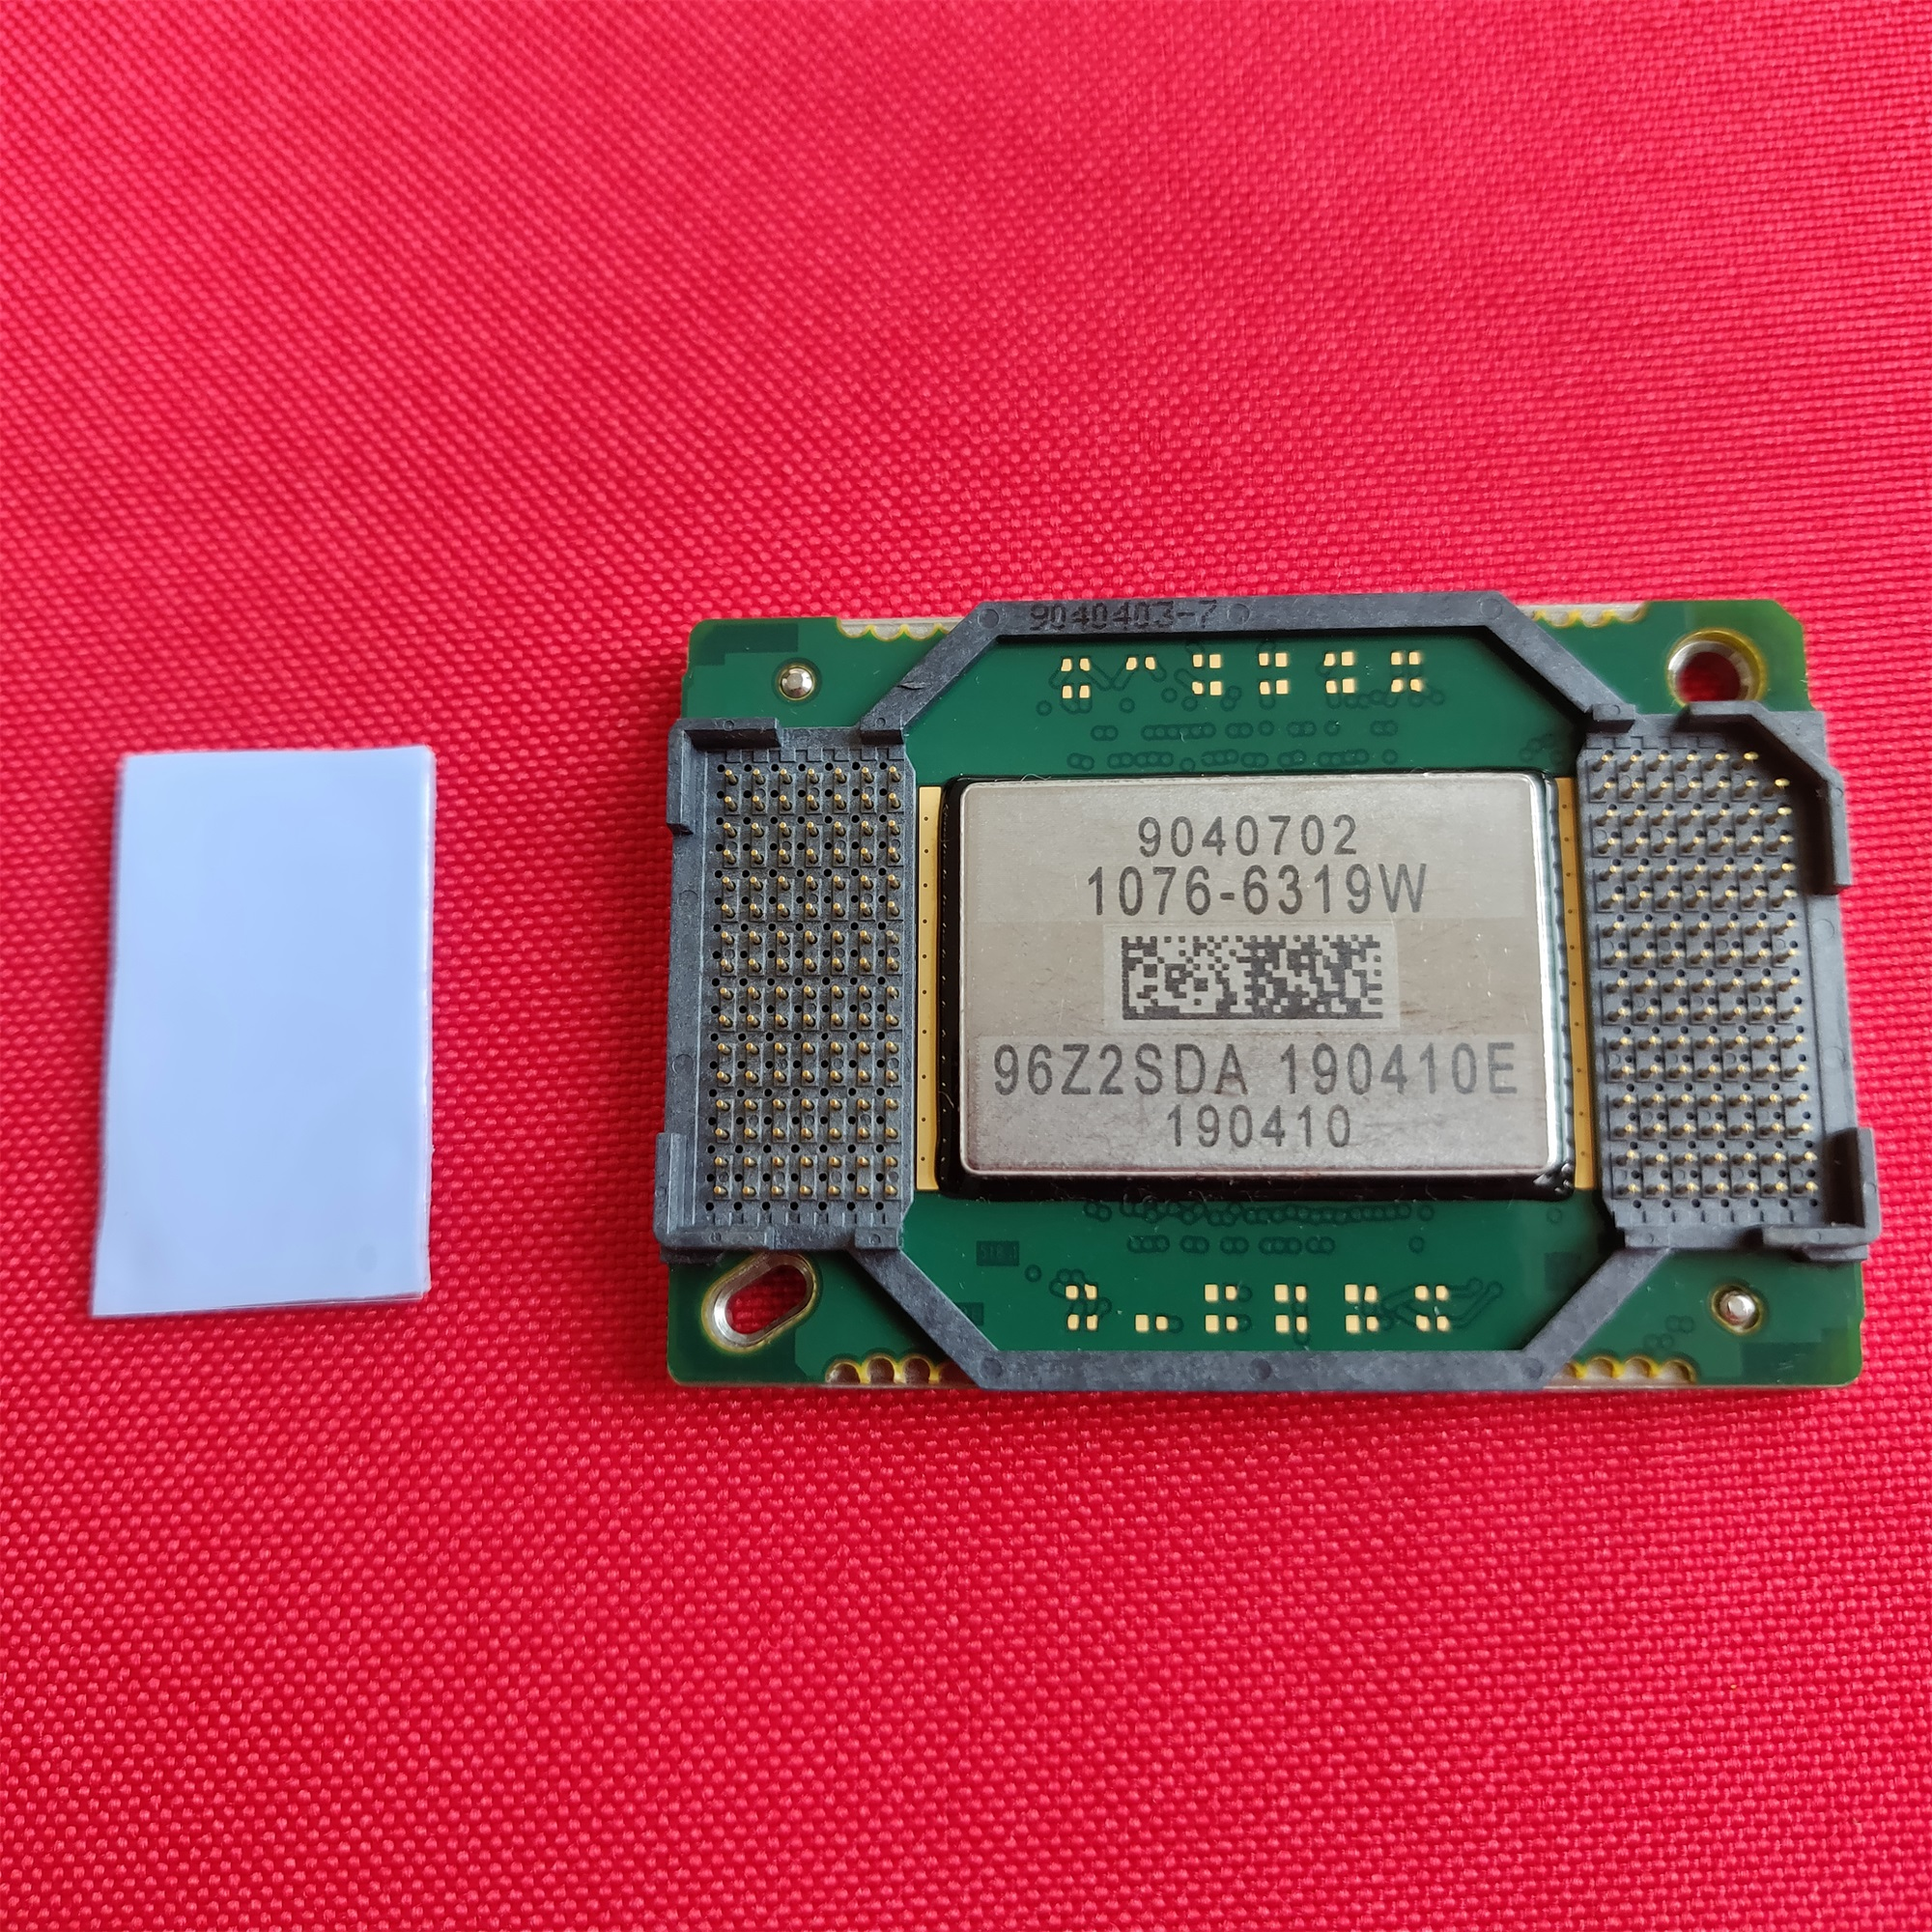 1076-6319W 1076-6318W 1076-6328W 1076-6329W 1076-632AW 1076-631AW big DMD chip for projectors projection same use